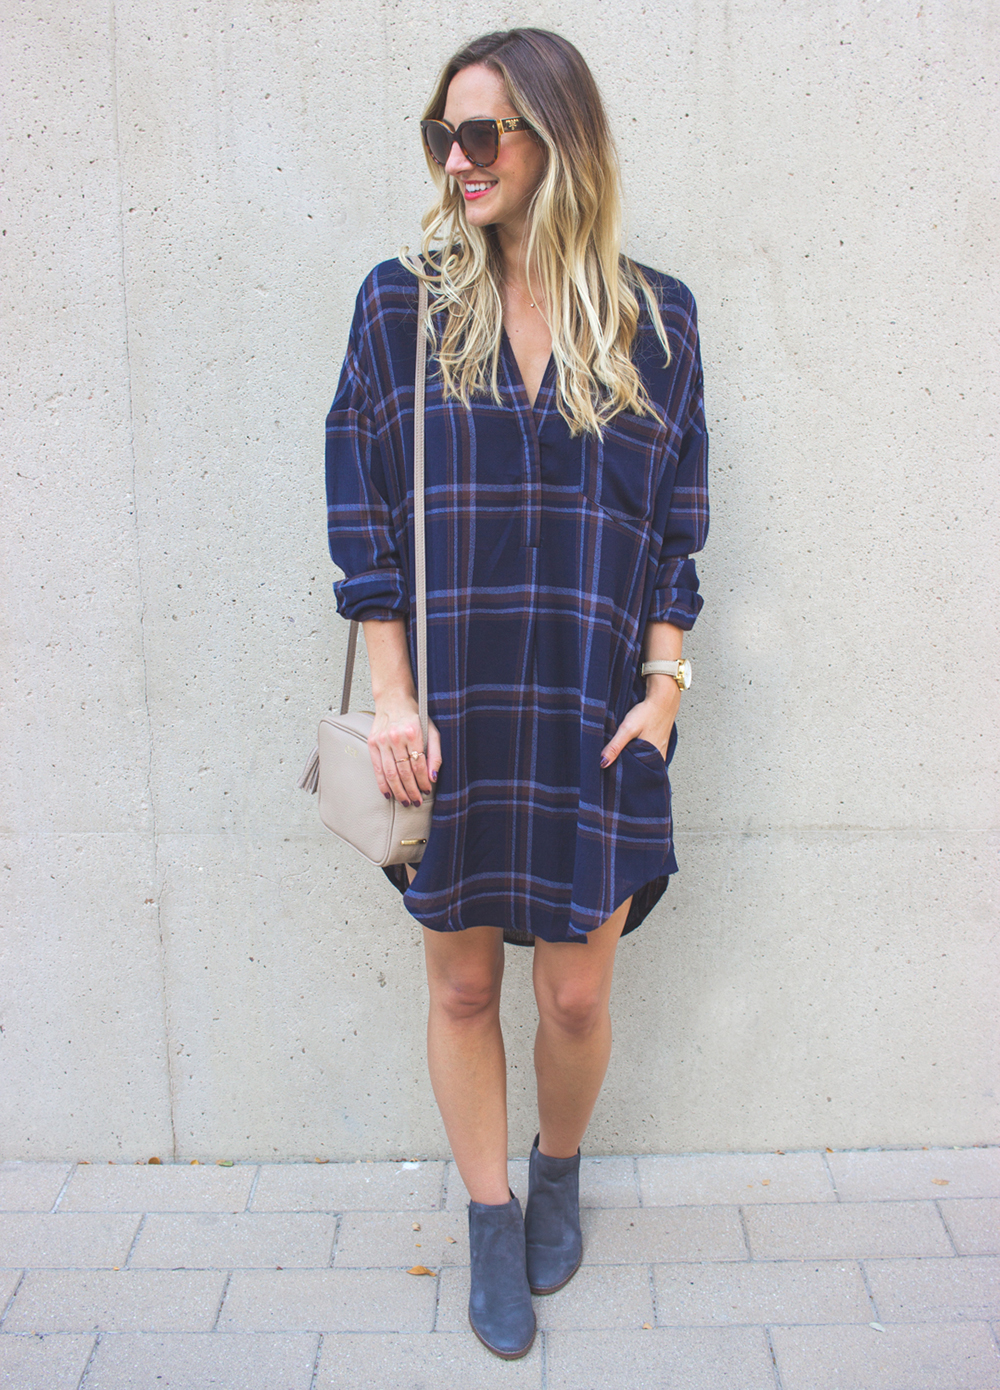 livvyland-blog-olivia-watson-plaid-flannel-shirt-shift-dress-dolce-vita-tesse-blue-suede-ankle-booties-navy-4